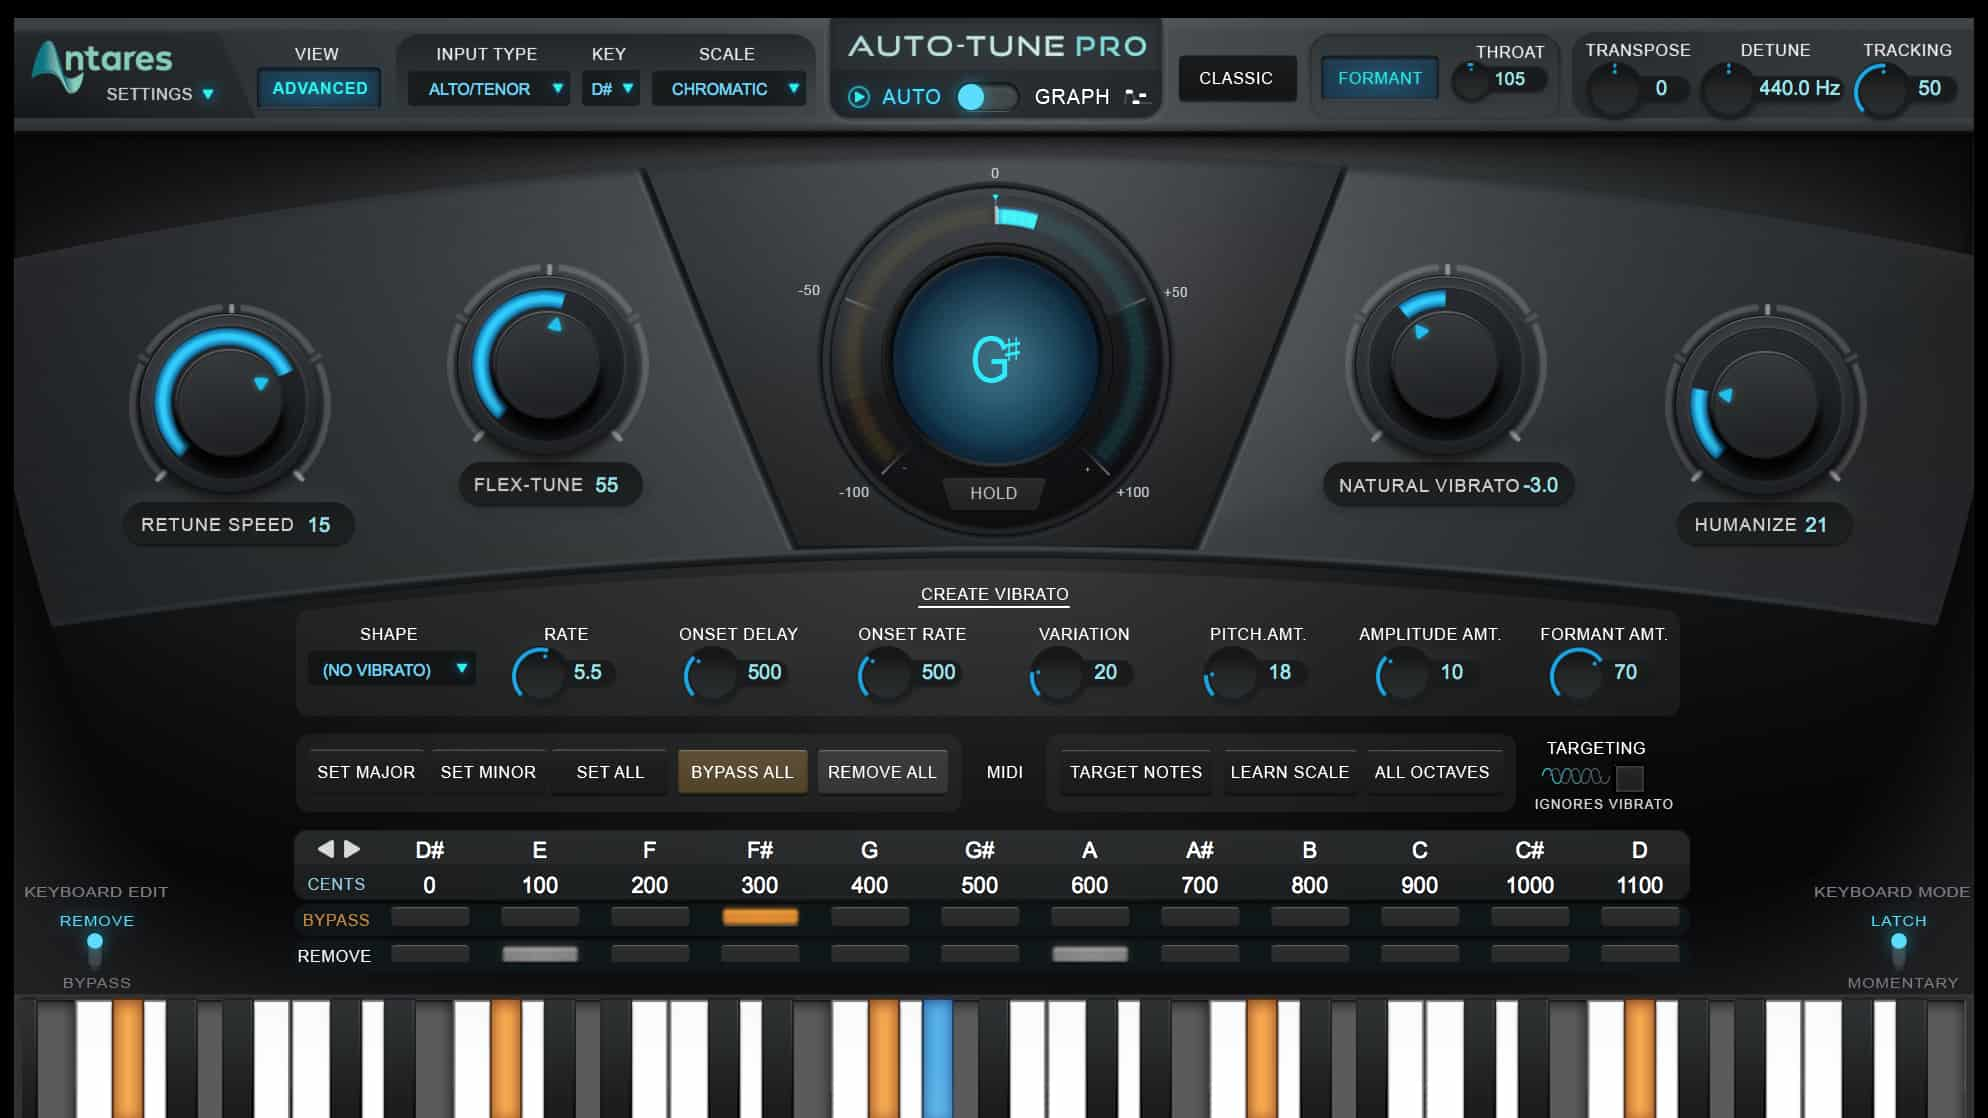 autotune evo crack free download